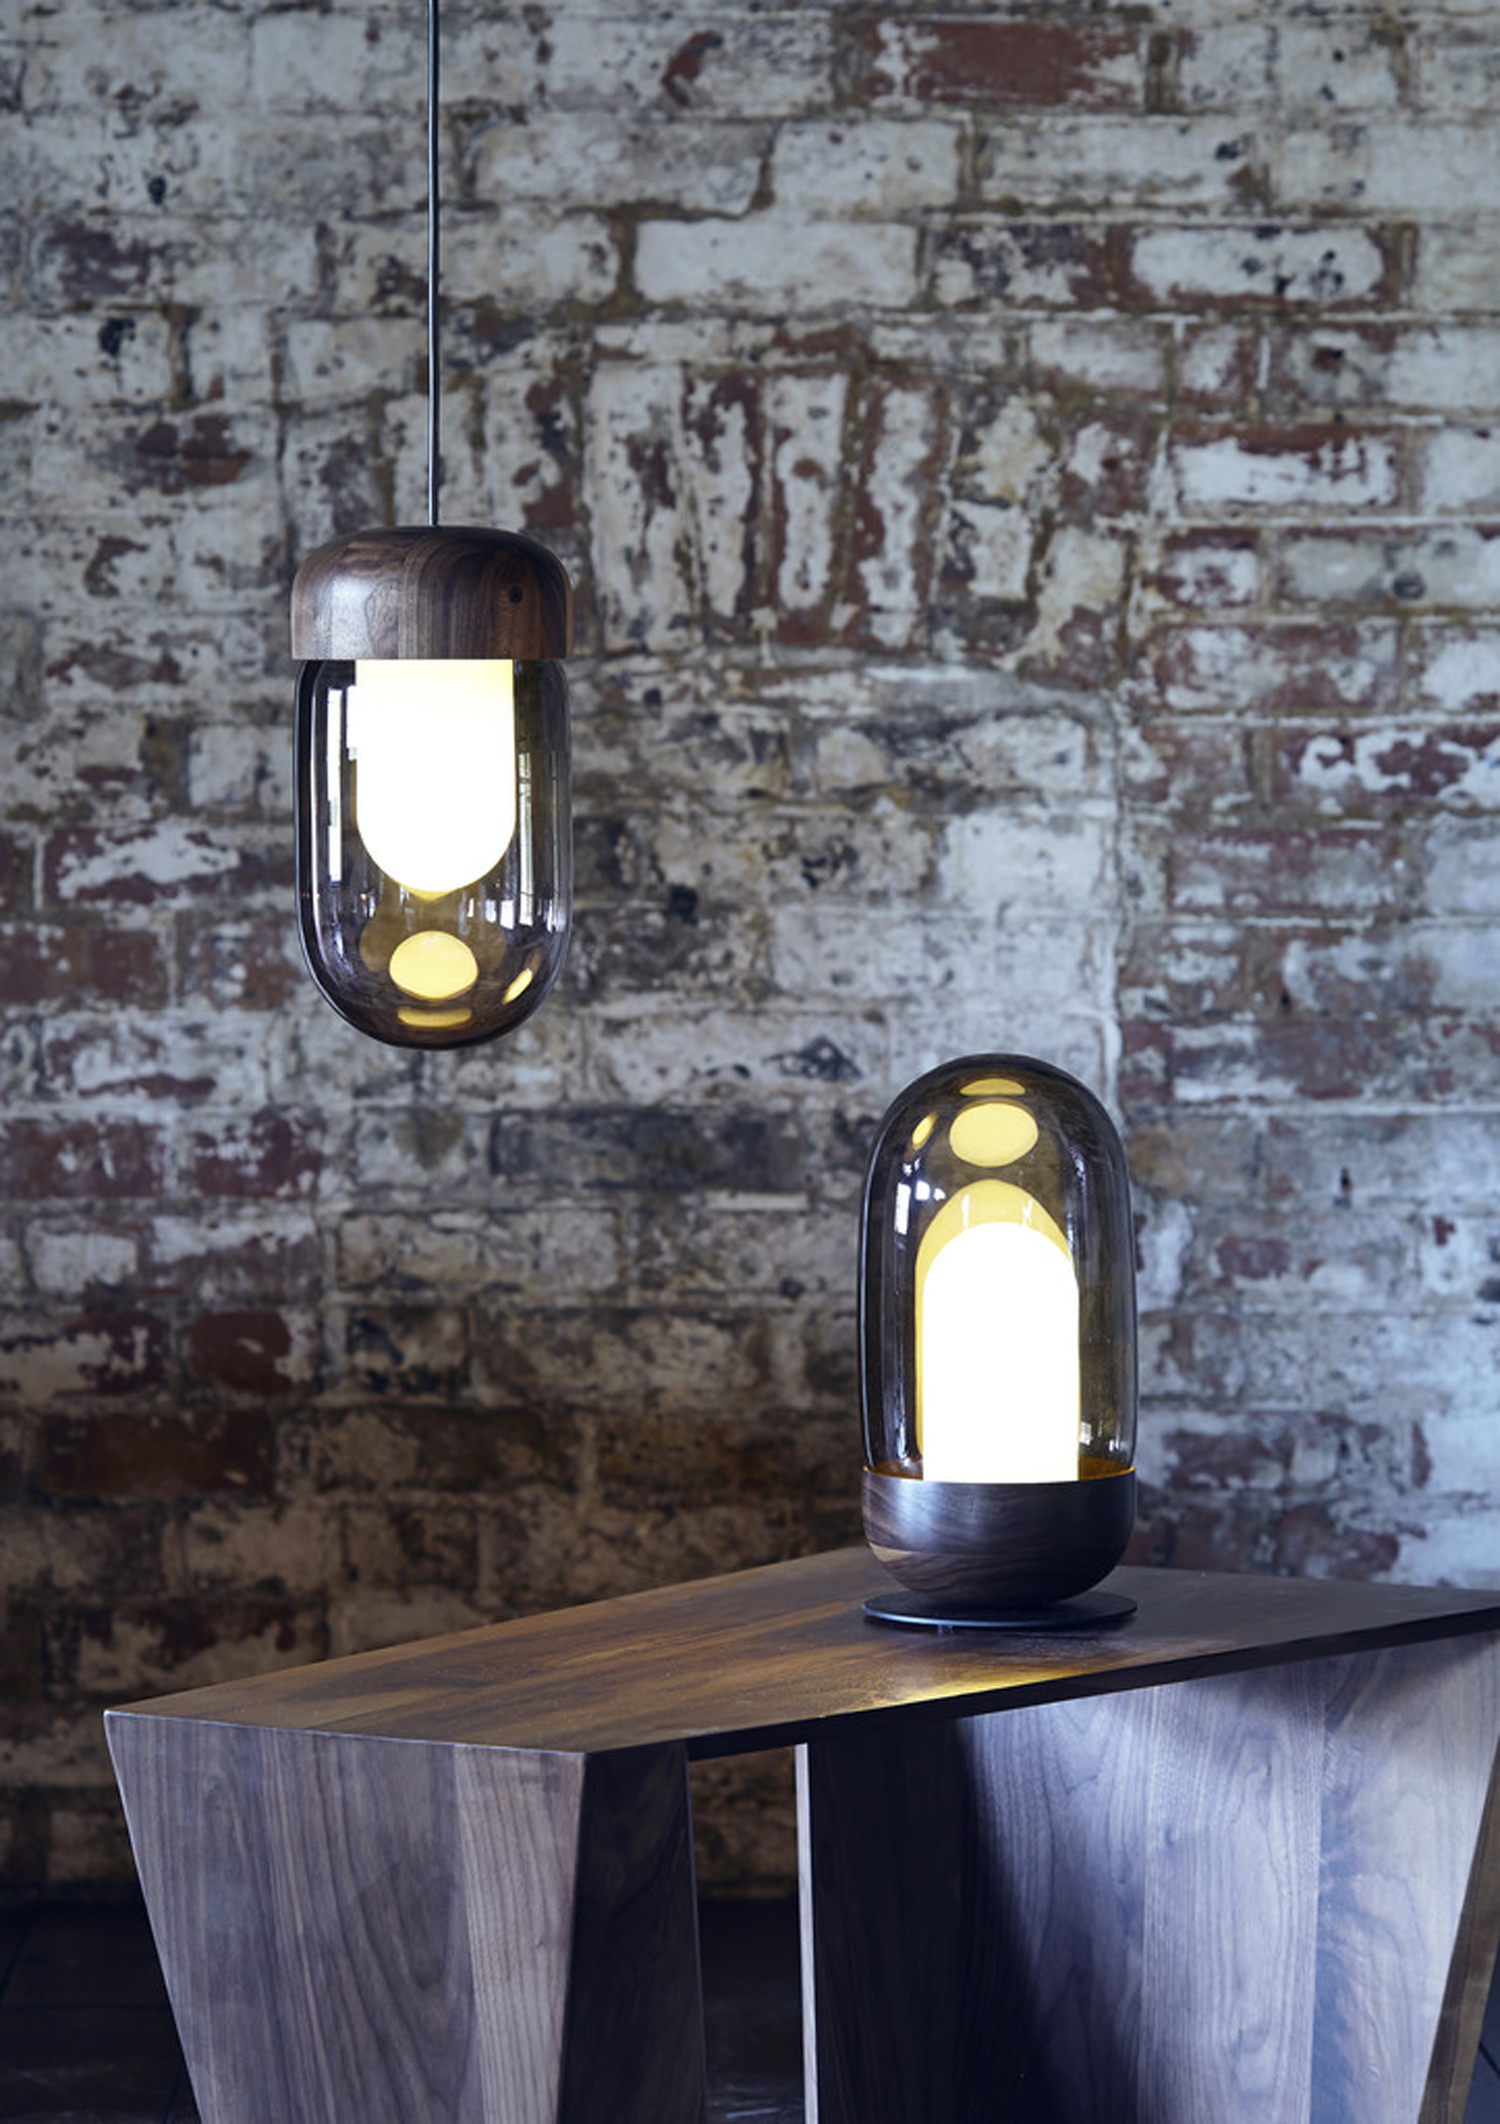 Magnus Pettersen's 'Bell' lights for Heal's, which come in pendant and table forms